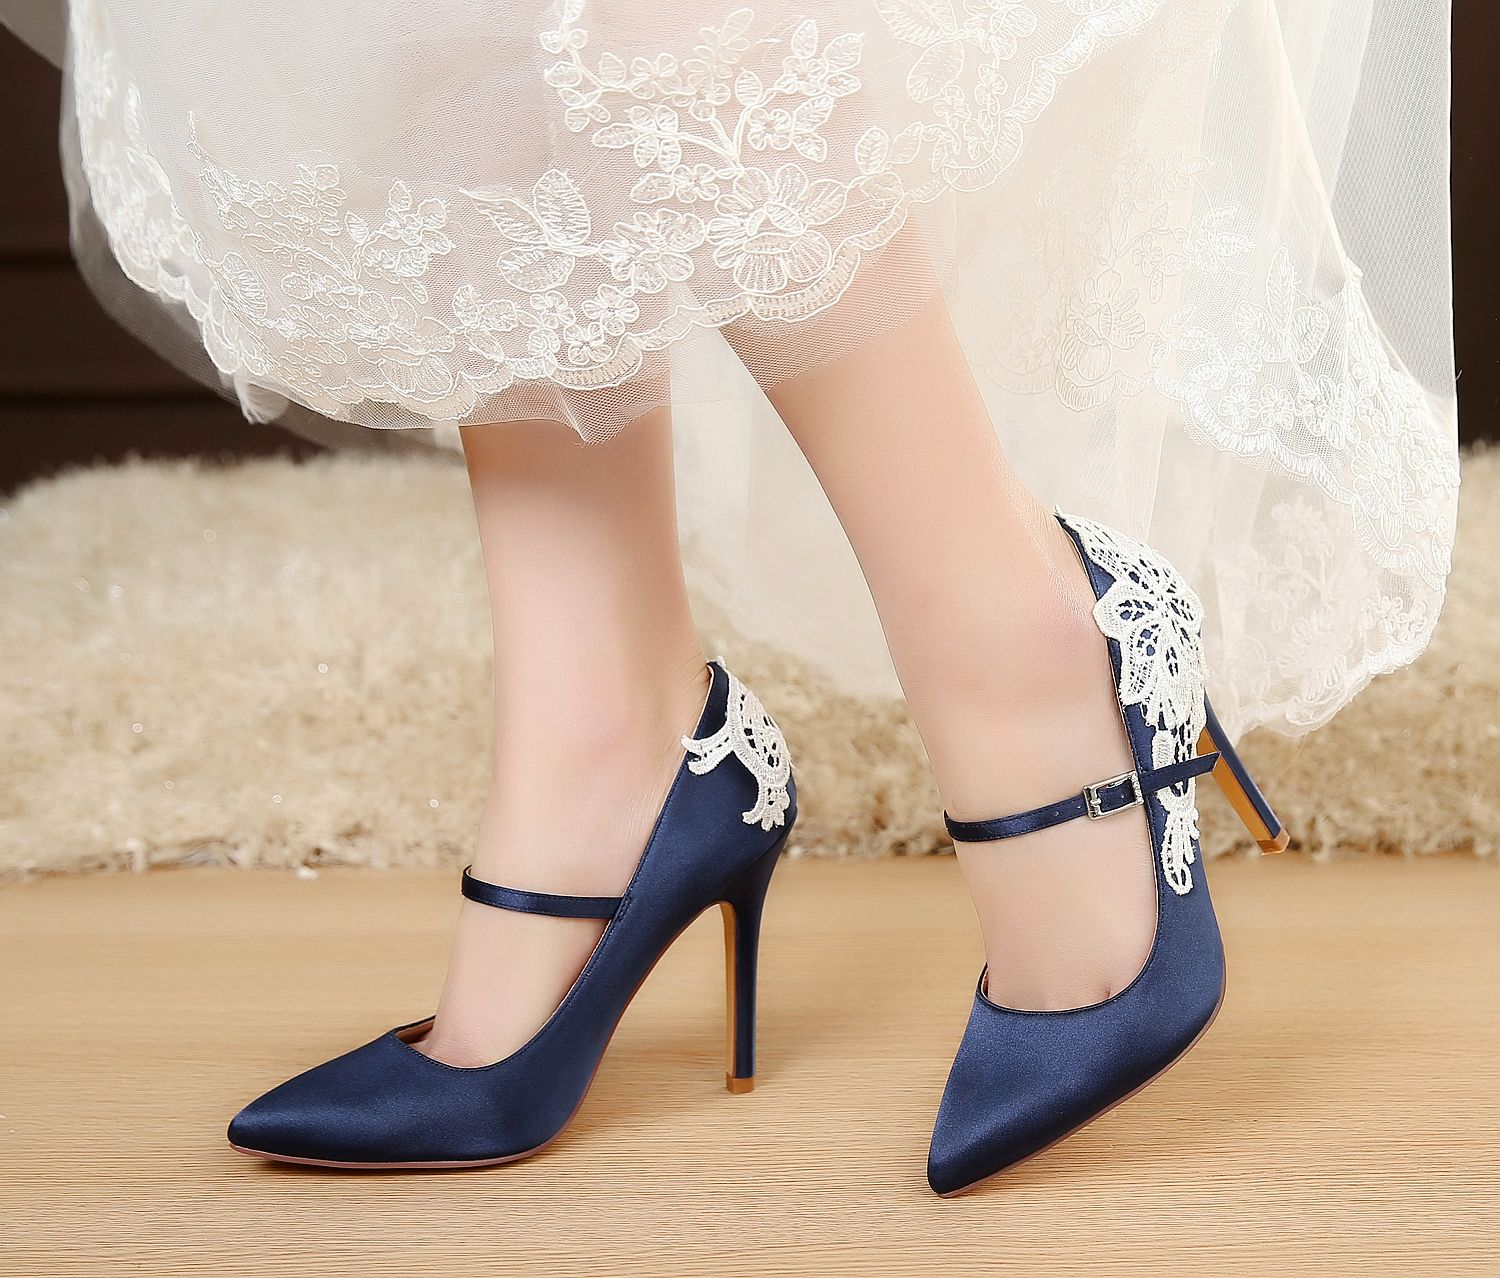 satin, Mary Jane Shoes High Heels, Blue Wedding Shoes Closed Toe, Designer Shoes for Wedding Bride, Sexy Wedding Shoes High Heel 4.5 inch, Women shoes combaining with White Lace and Blue Satin